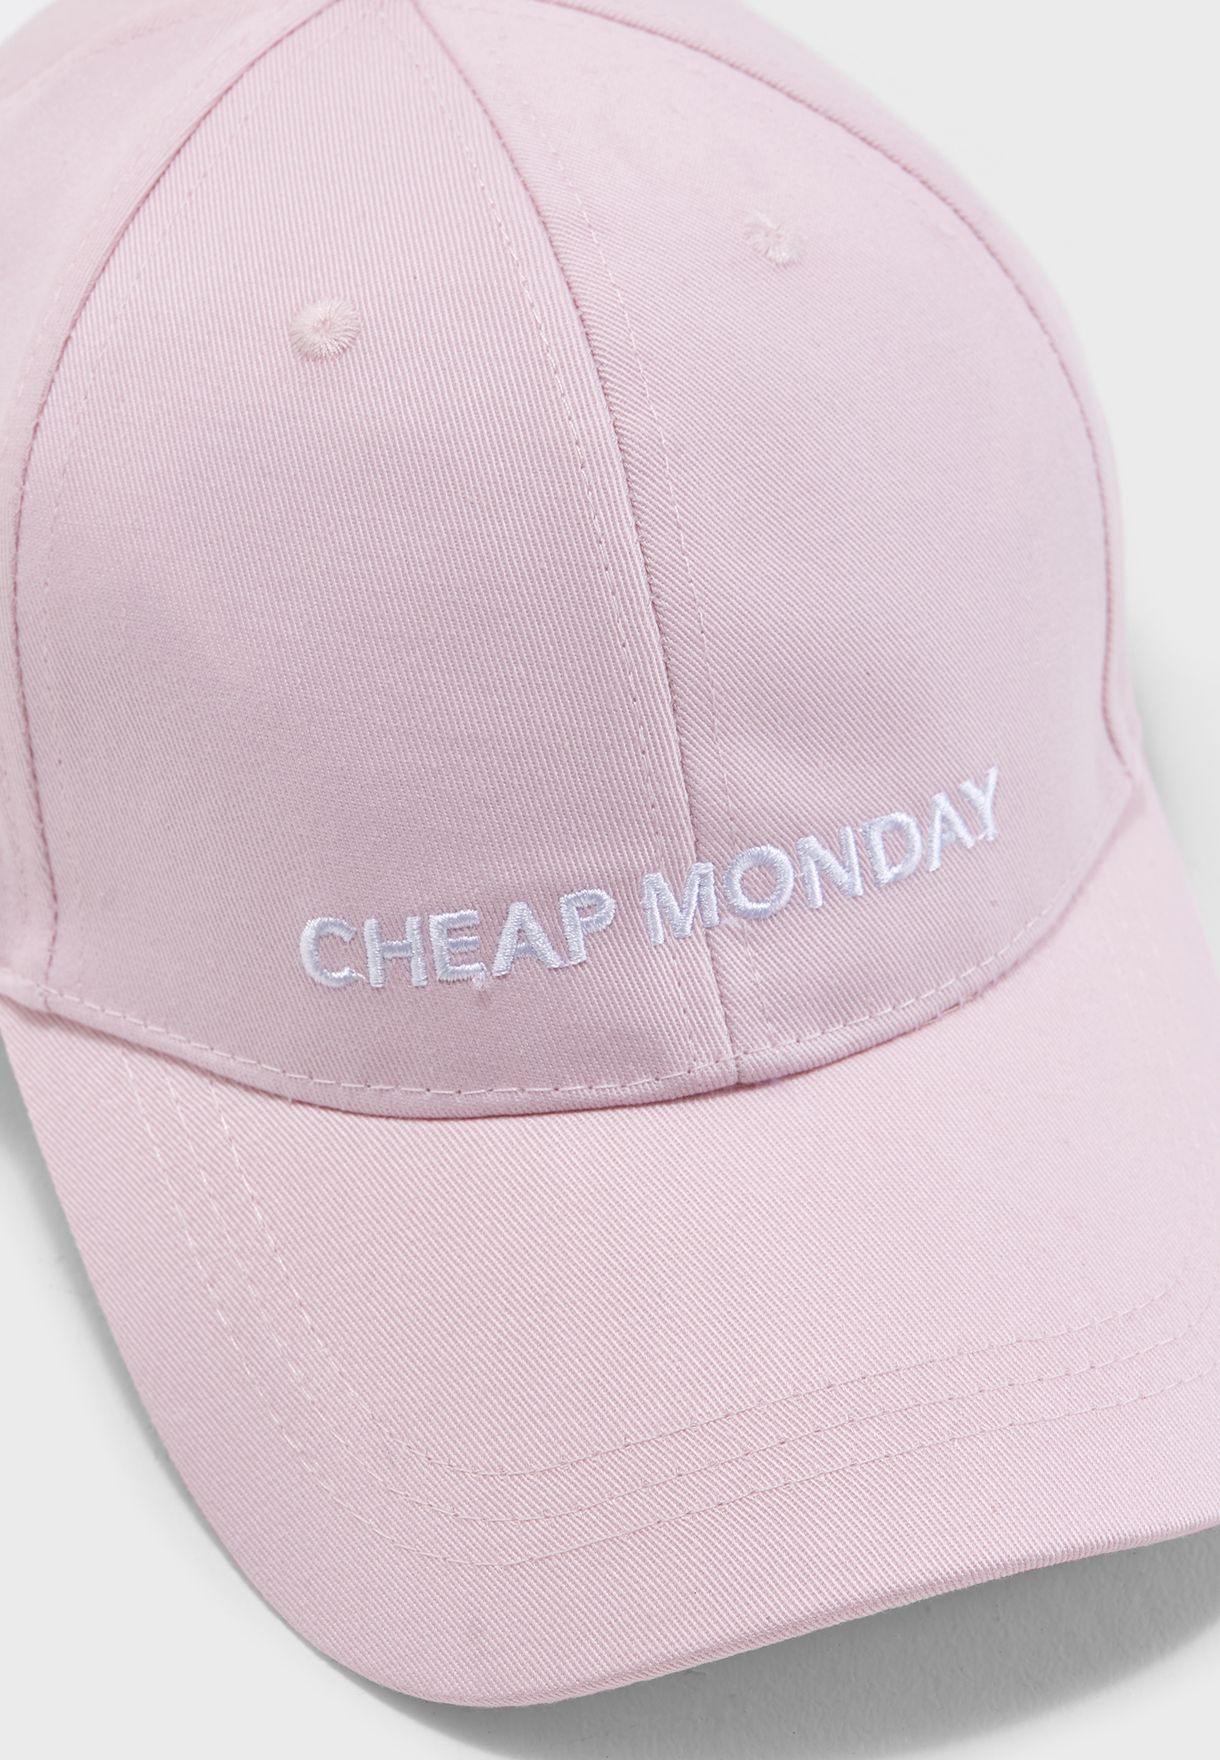 Shop Cheap Monday pink Baseball Curved Peak Cap 0518078 for ... 27b1578c168